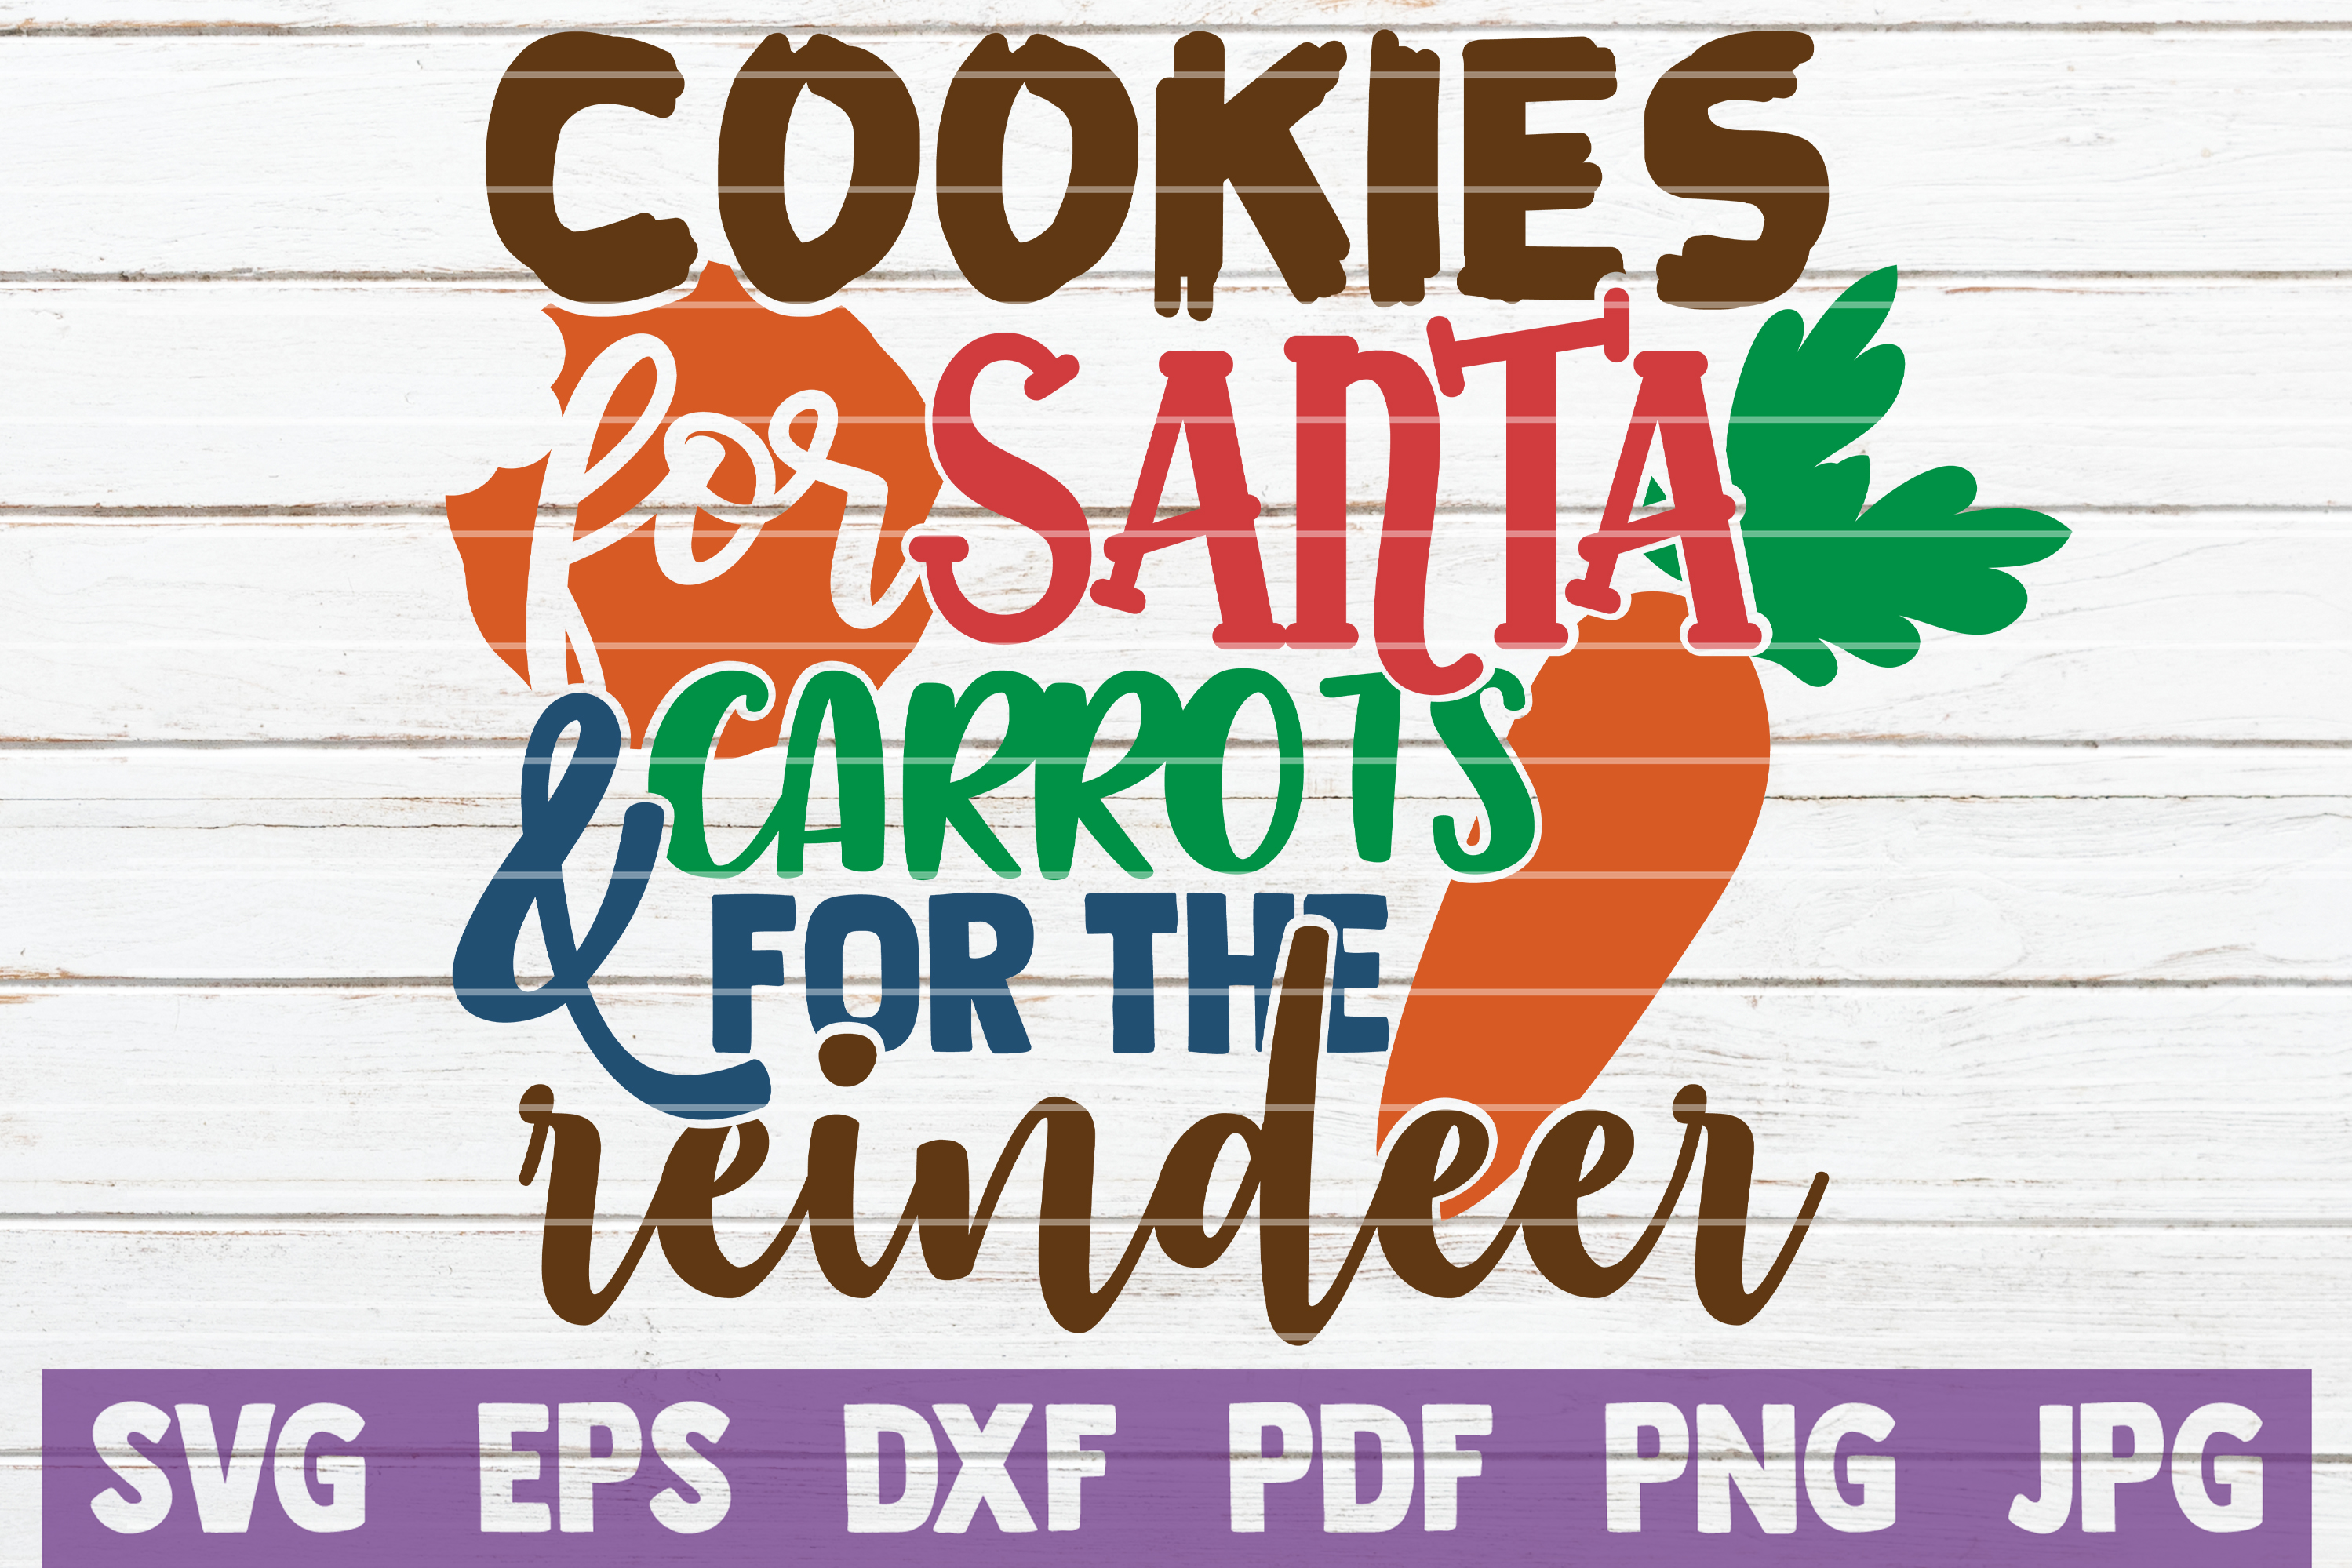 Download Free Cookies For Santa Carrots For Reindeer Graphic By for Cricut Explore, Silhouette and other cutting machines.